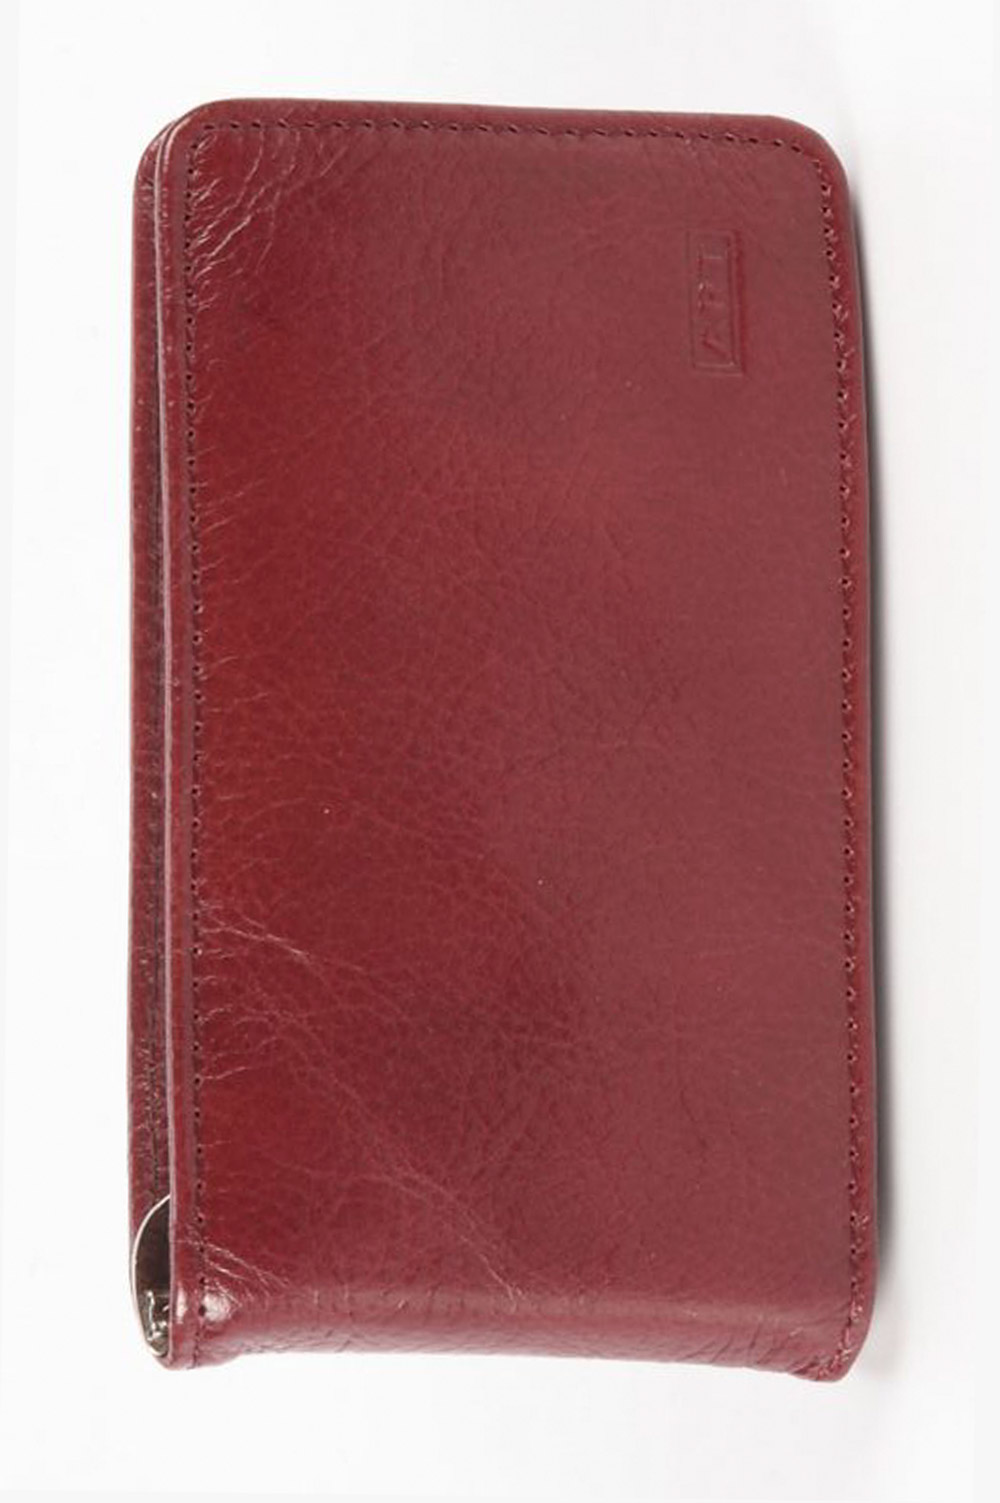 Art Bordeaux Leather business card holder with clip and magnet - 410845